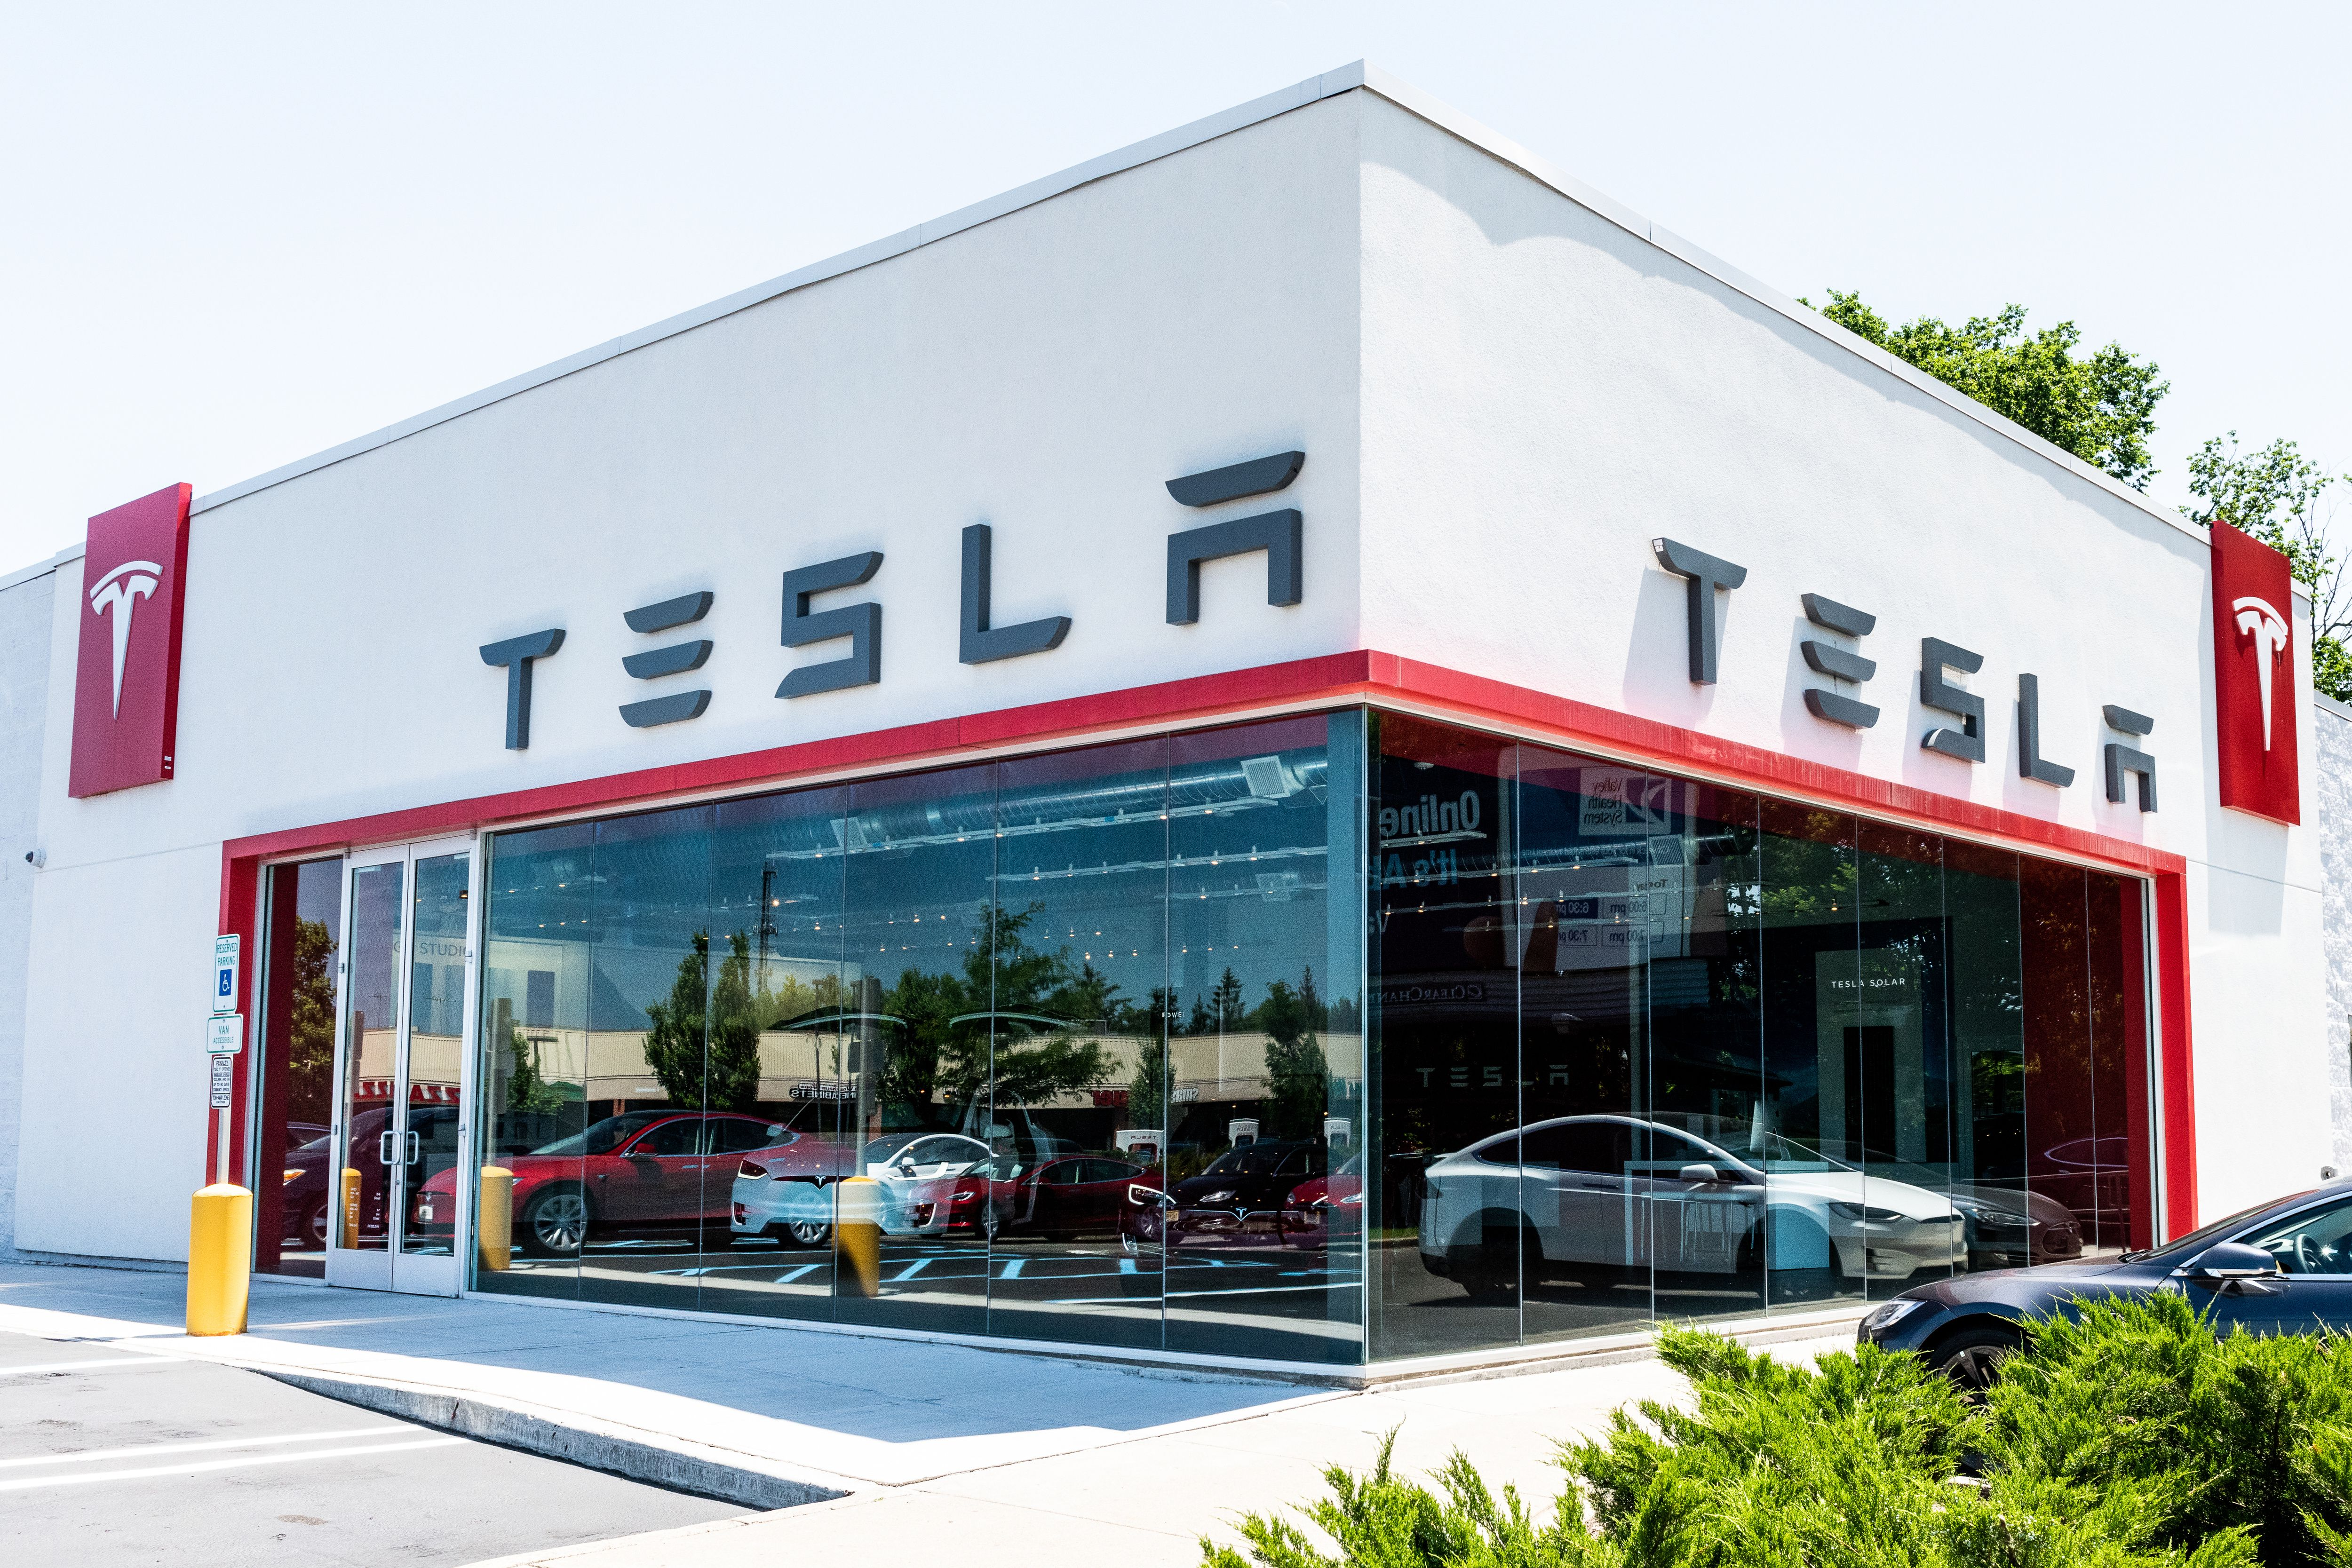 Tesla is closing all its stores so you can have a $35K Model 3 - Axios